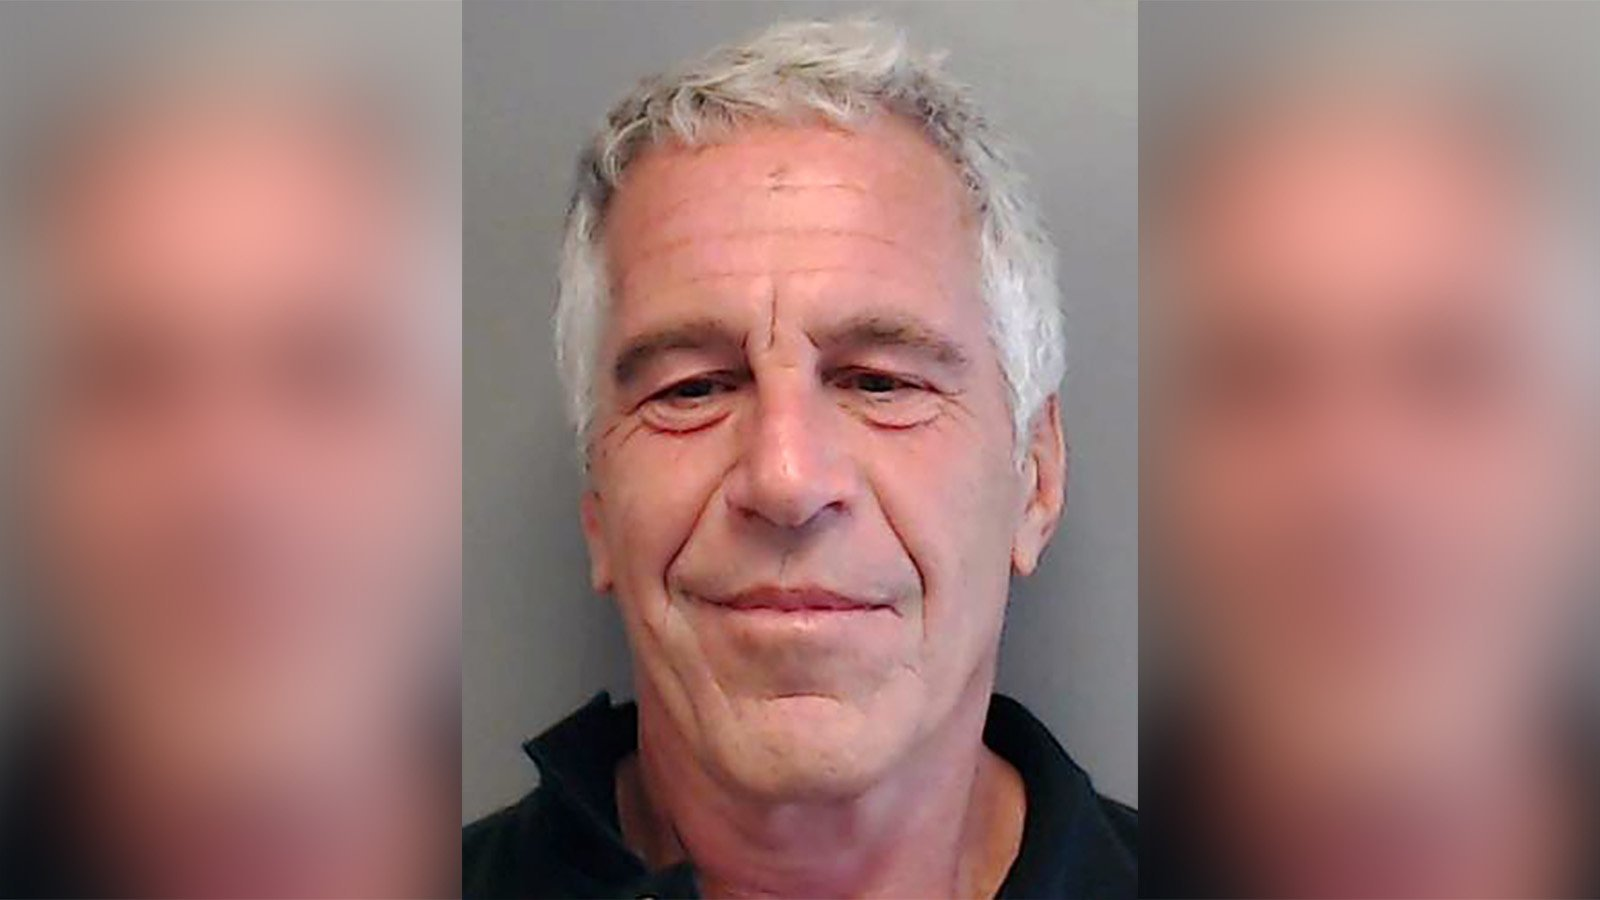 Prison guard expected to surrender to face charges related to Jeffrey Epstein's death